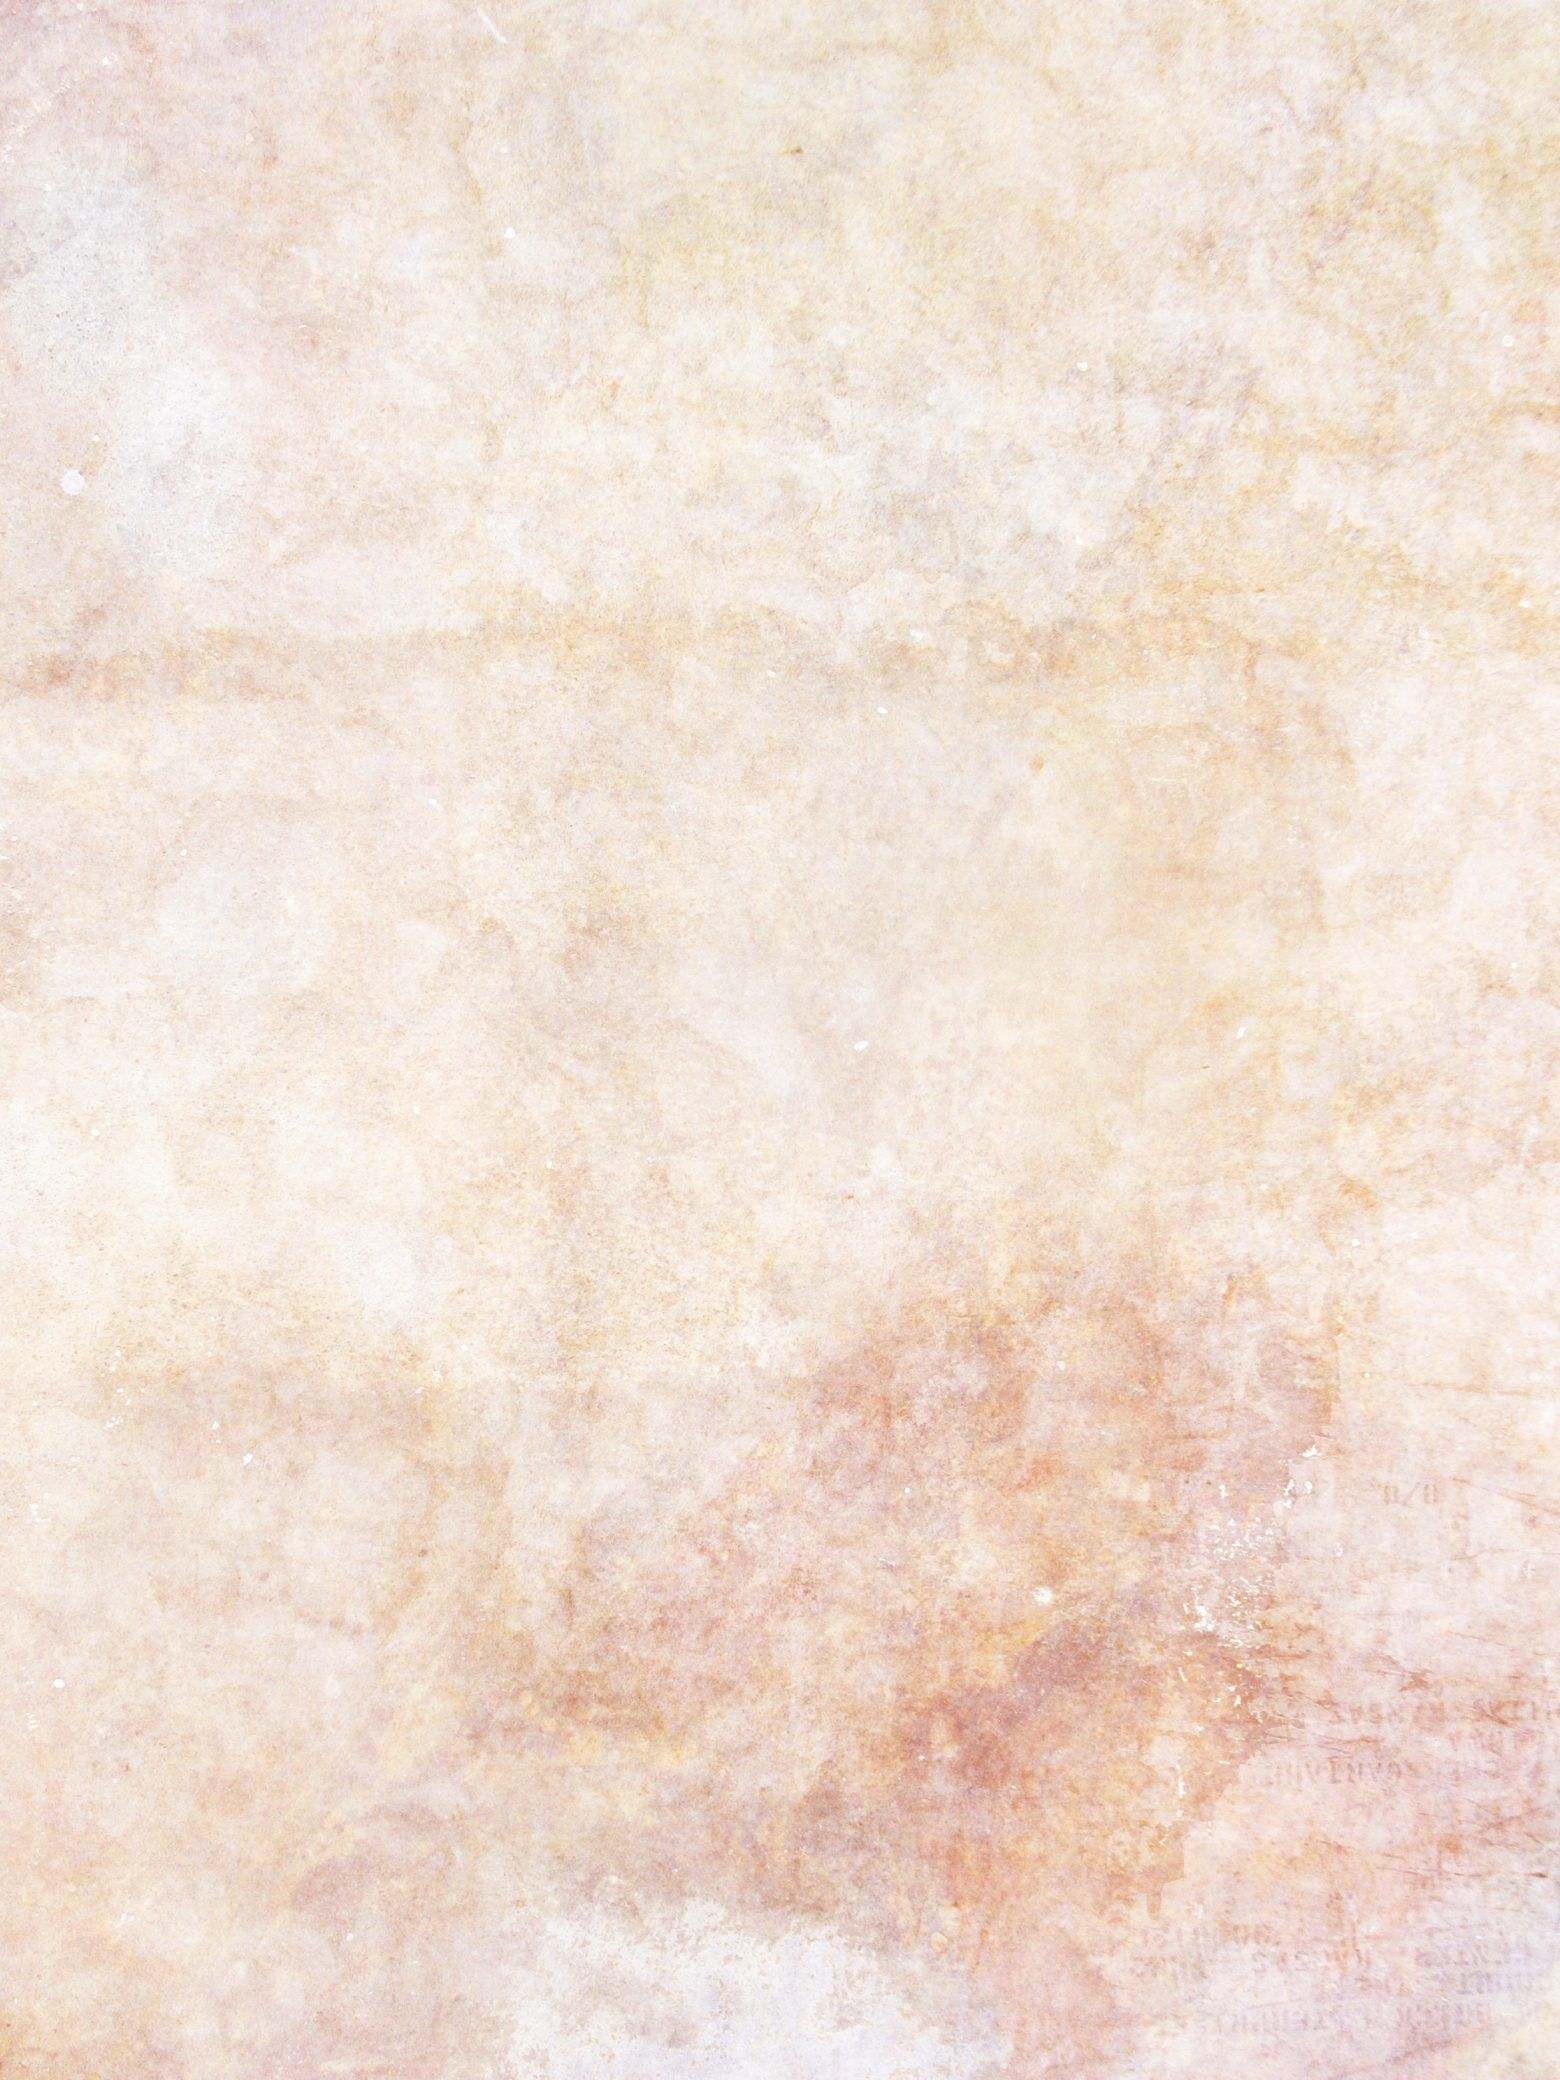 Delicate Grunge Texture Free Texture Backgrounds Watercolor